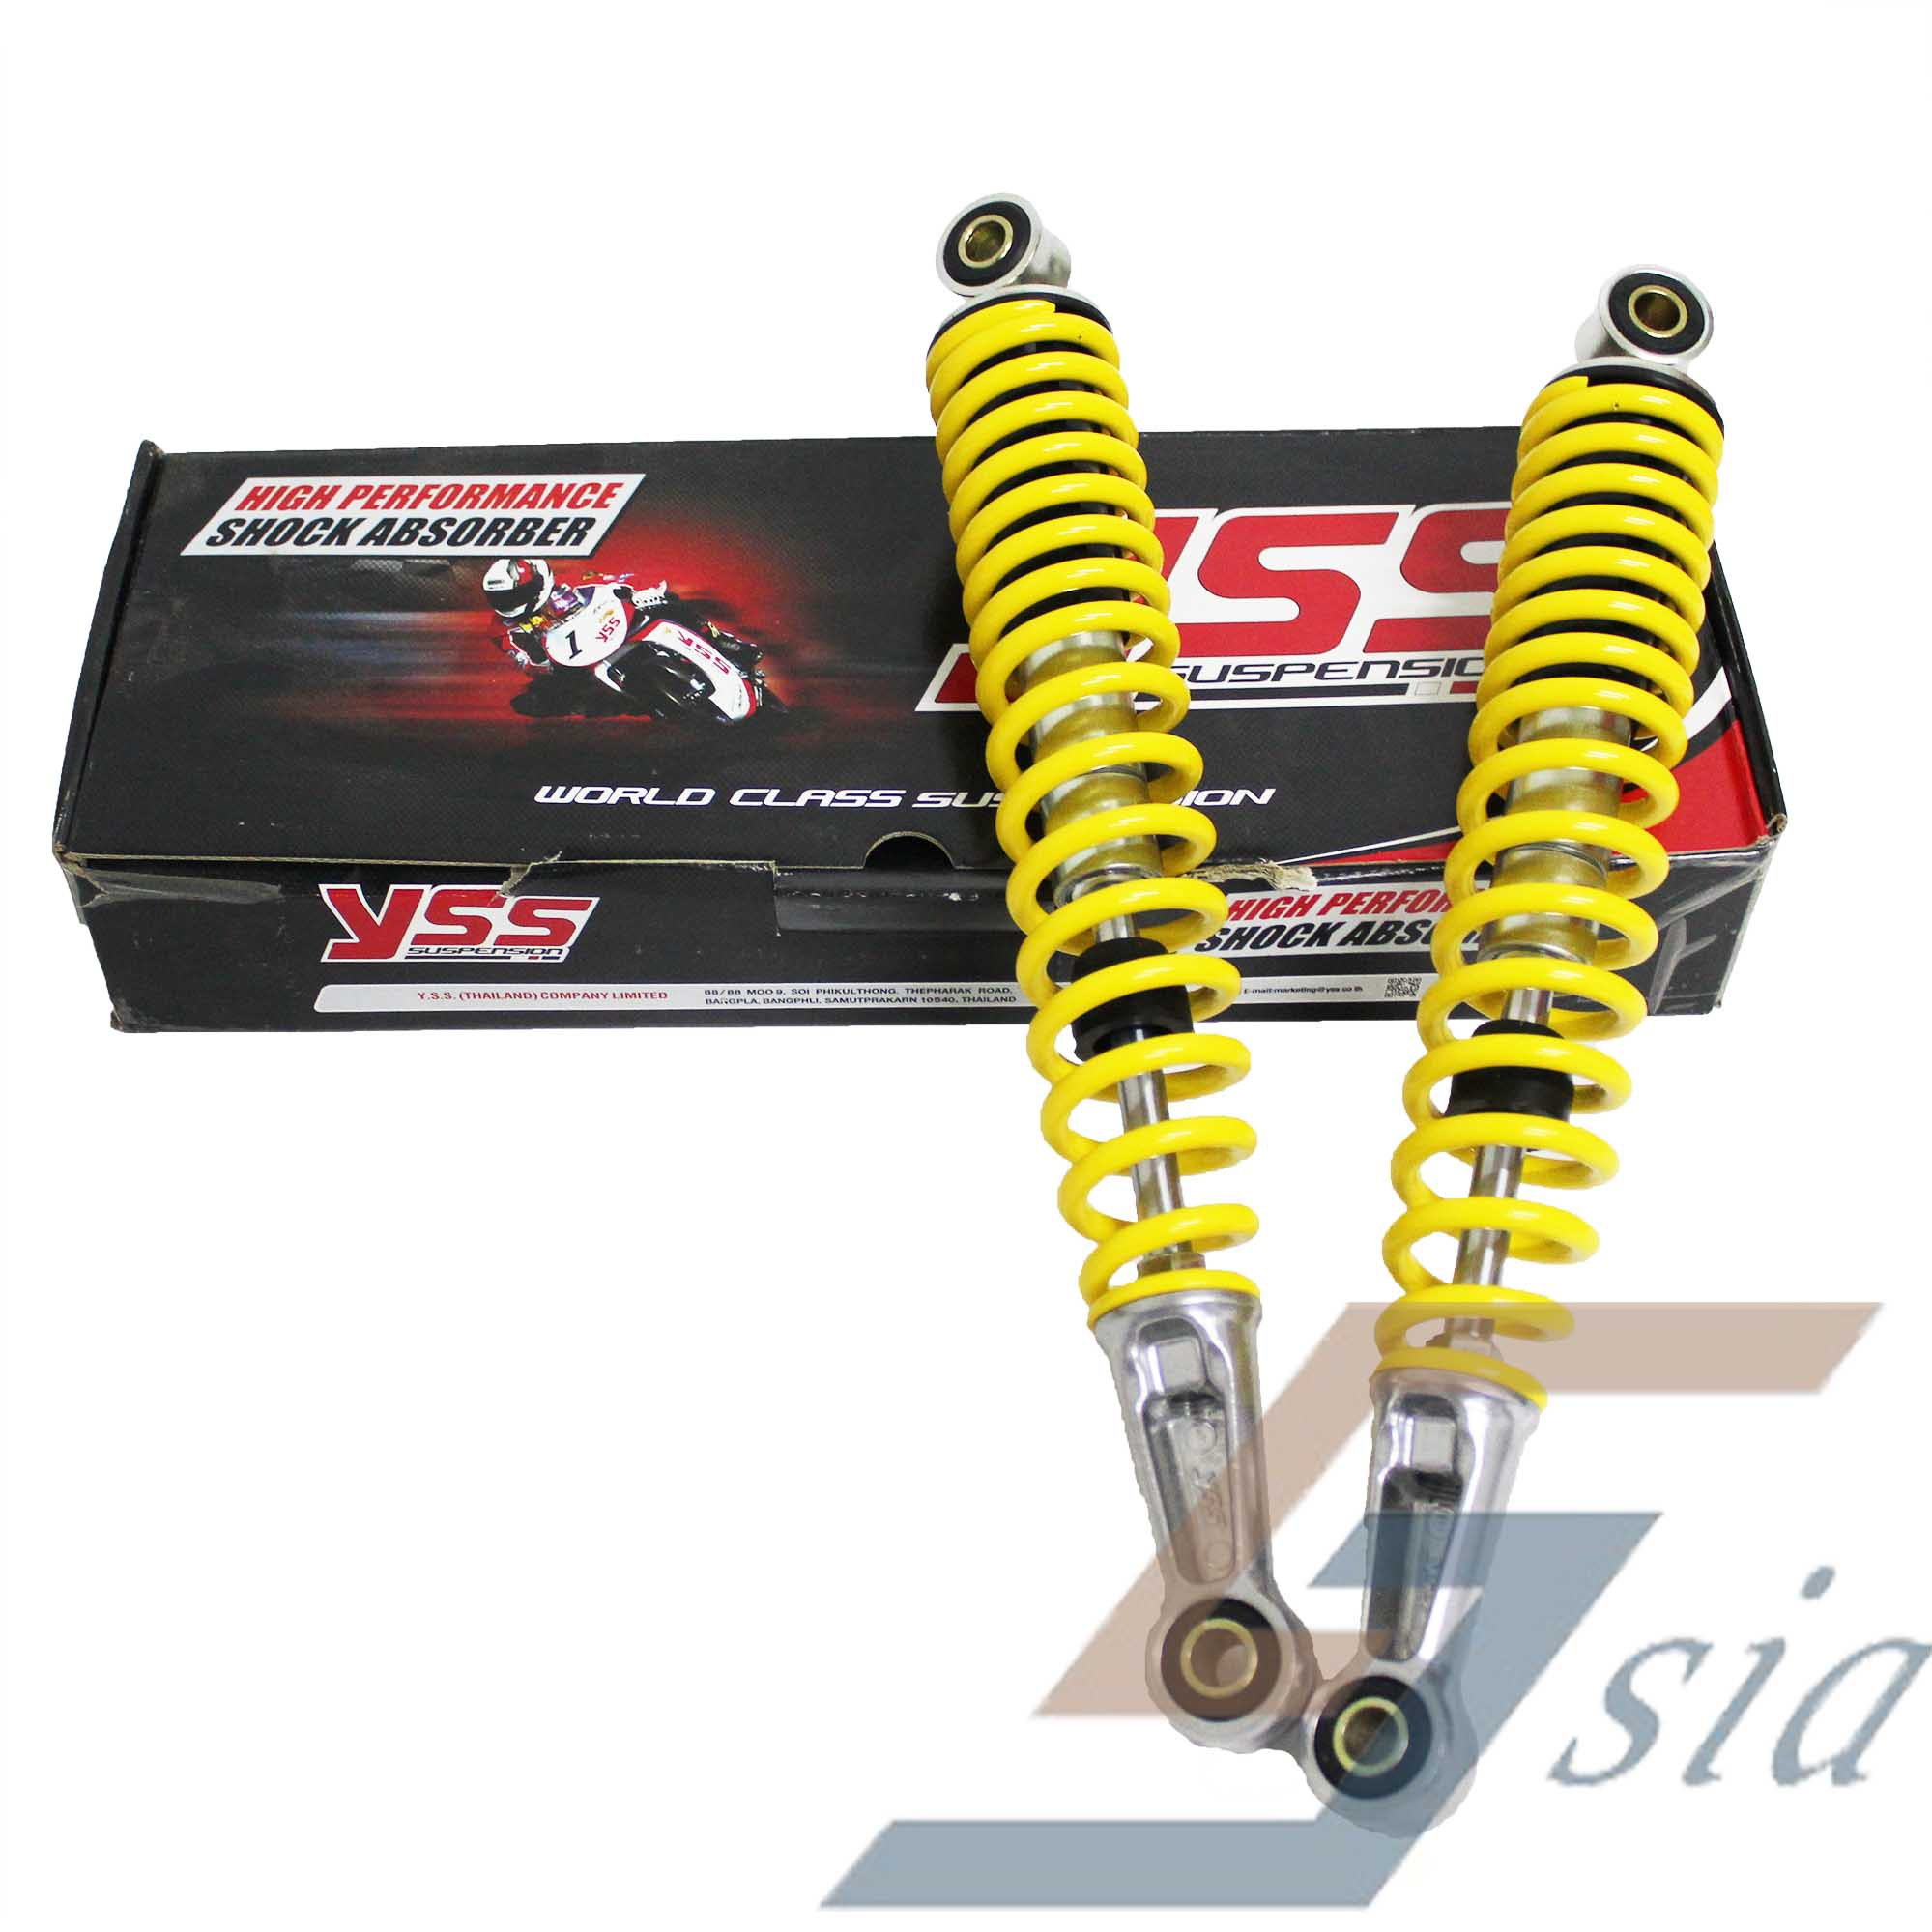 RXZ/DASH/WAVE/FUTURE YSS 335mm Rear Suspension  (Yellow)